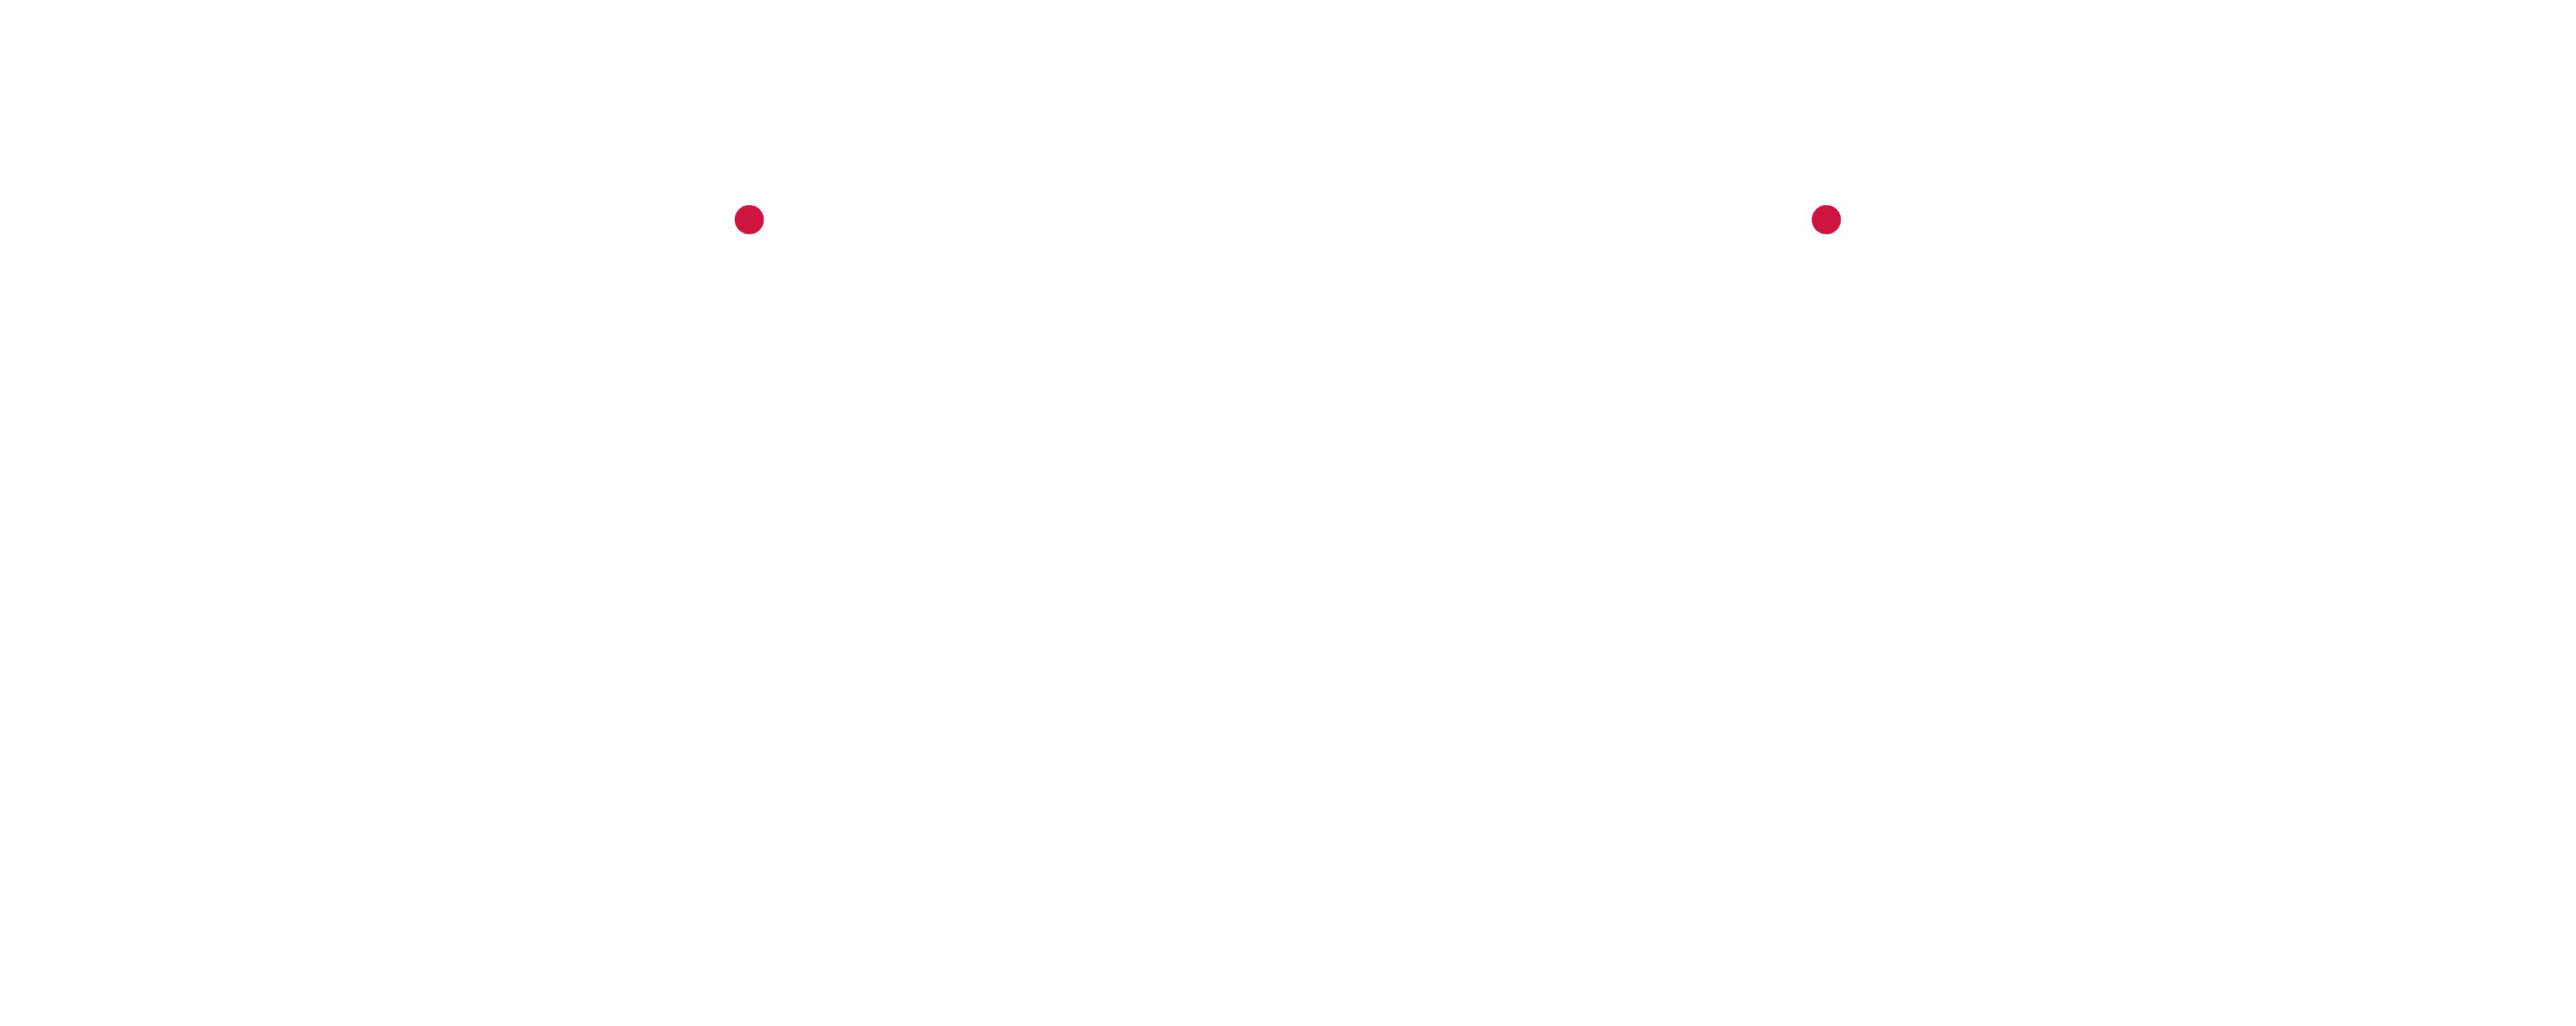 Big Questions, Our Legal Answers